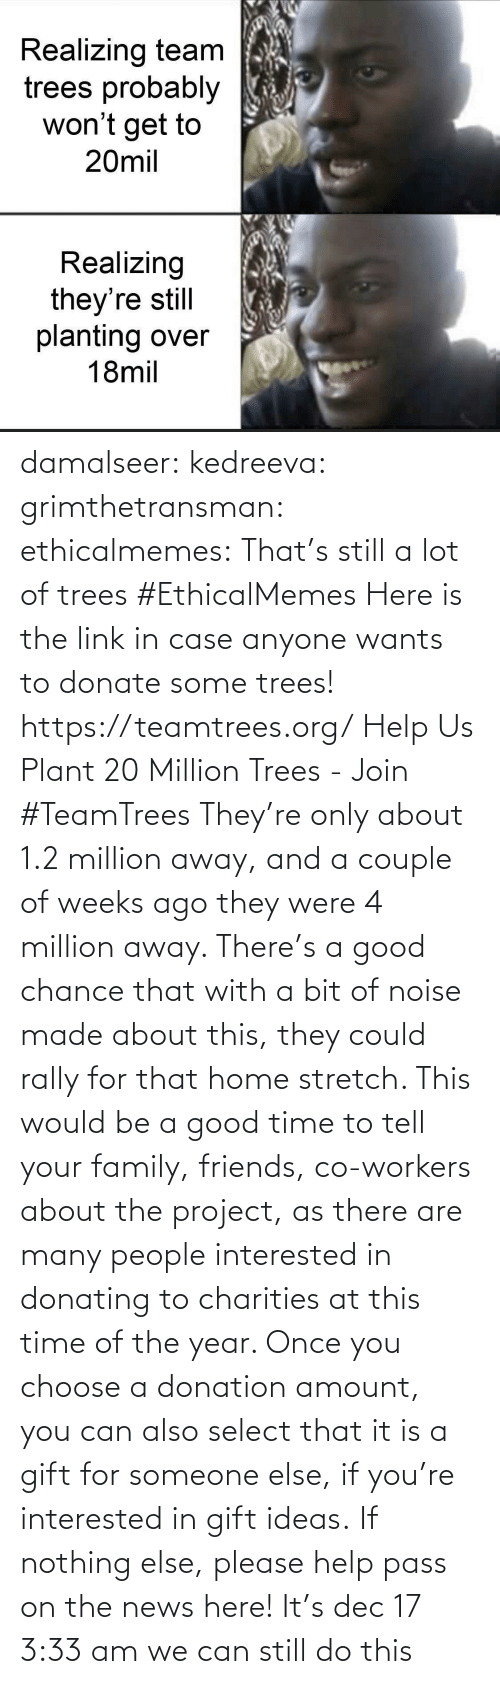 Family, Friends, and News: Realizing team  trees probably  won't get to  20mil  Realizing  they're still  planting over  18mil damalseer:  kedreeva: grimthetransman:  ethicalmemes:  That's still a lot of trees #EthicalMemes   Here is the link in case anyone wants to donate some trees!  https://teamtrees.org/ Help Us Plant 20 Million Trees - Join #TeamTrees  They're only about 1.2 million away, and a couple of weeks ago they were 4 million away. There's a good chance that with a bit of noise made about this, they could rally for that home stretch. This would be a good time to tell your family, friends, co-workers about the project, as there are many people interested in donating to charities at this time of the year. Once you choose a donation amount, you can also select that it is a gift for someone else, if you're interested in gift ideas. If nothing else, please help pass on the news here!    It's dec 17 3:33 am we can still do this